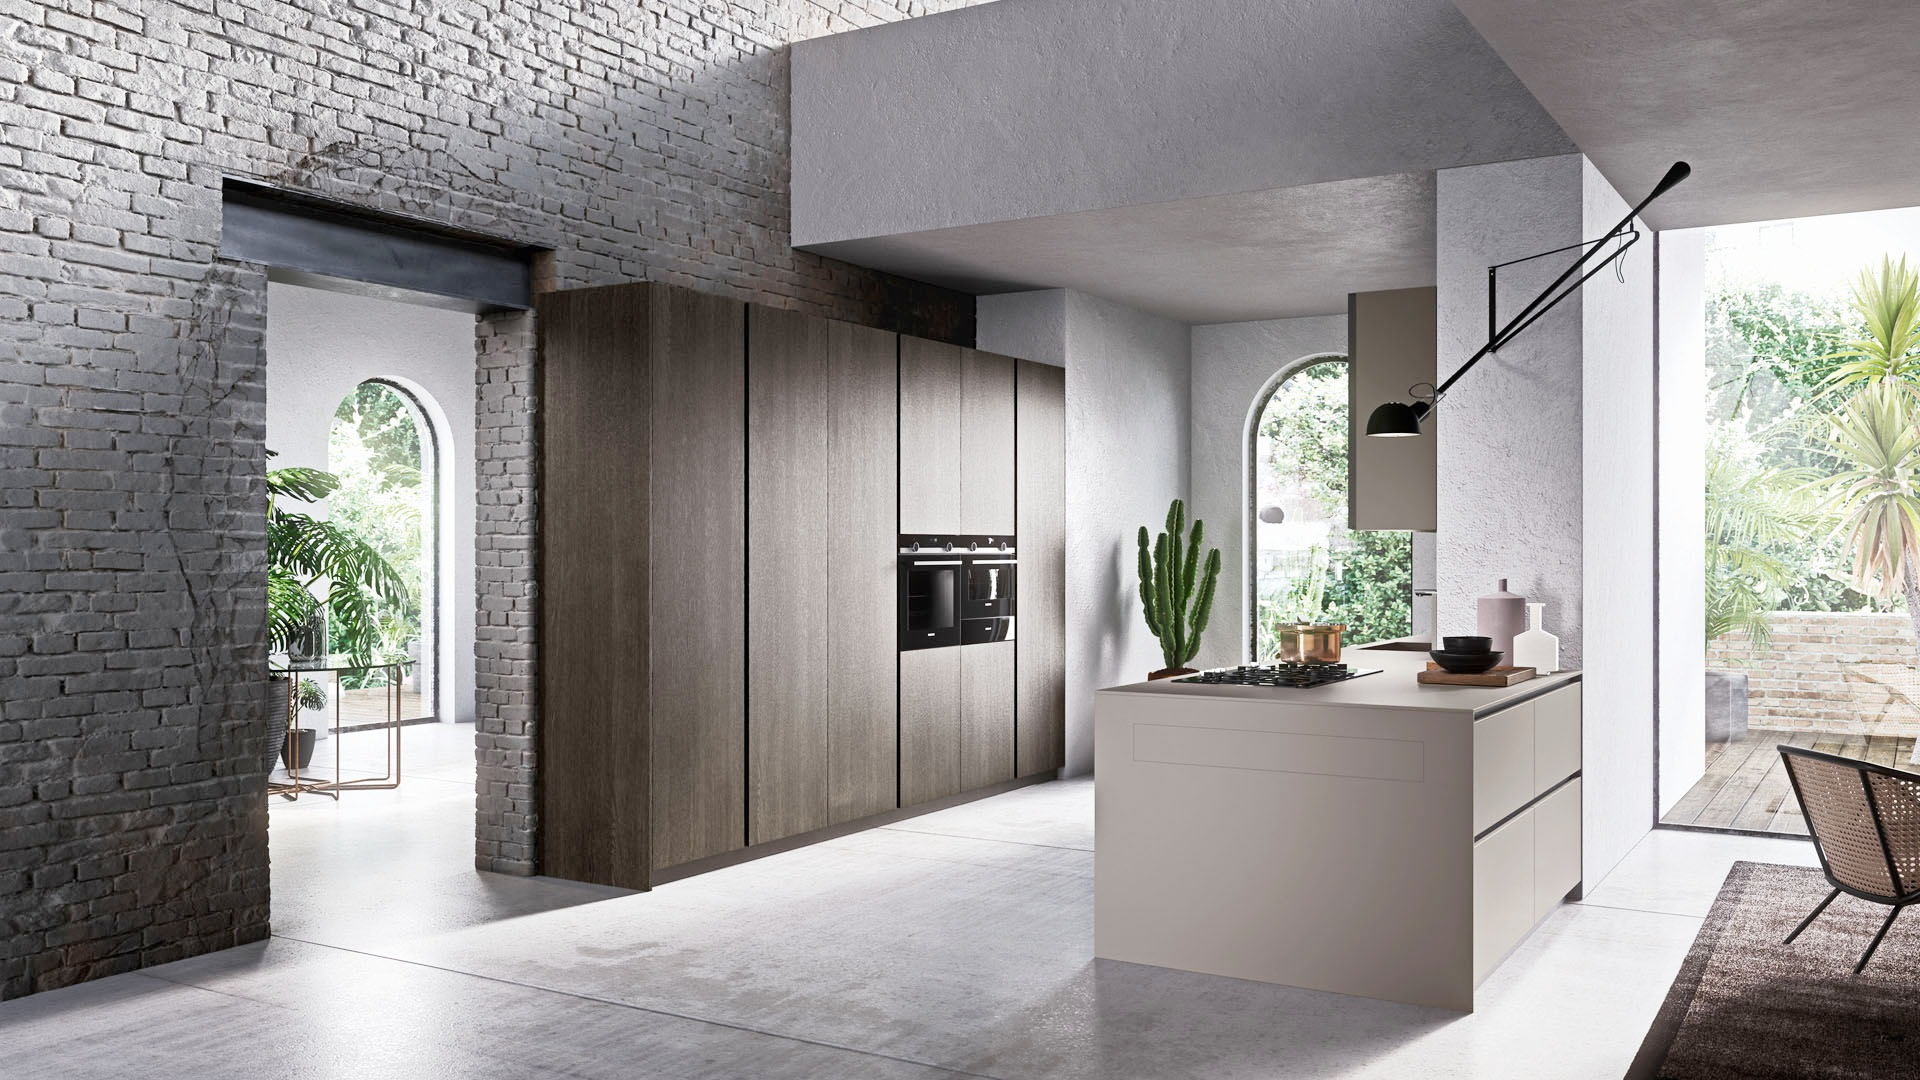 - We're the ultimate source of quality craftsmanship.Bold design that performs under pressure? We've got it. Artistic Kitchen offers the finest in highly-customizable and sustainable cabinetry for both traditional and modern kitchens. We've partnered with DOCA and Pedini to deliver handcrafted European style to the San Francisco Peninsula. If your client dreams it, we can build it.